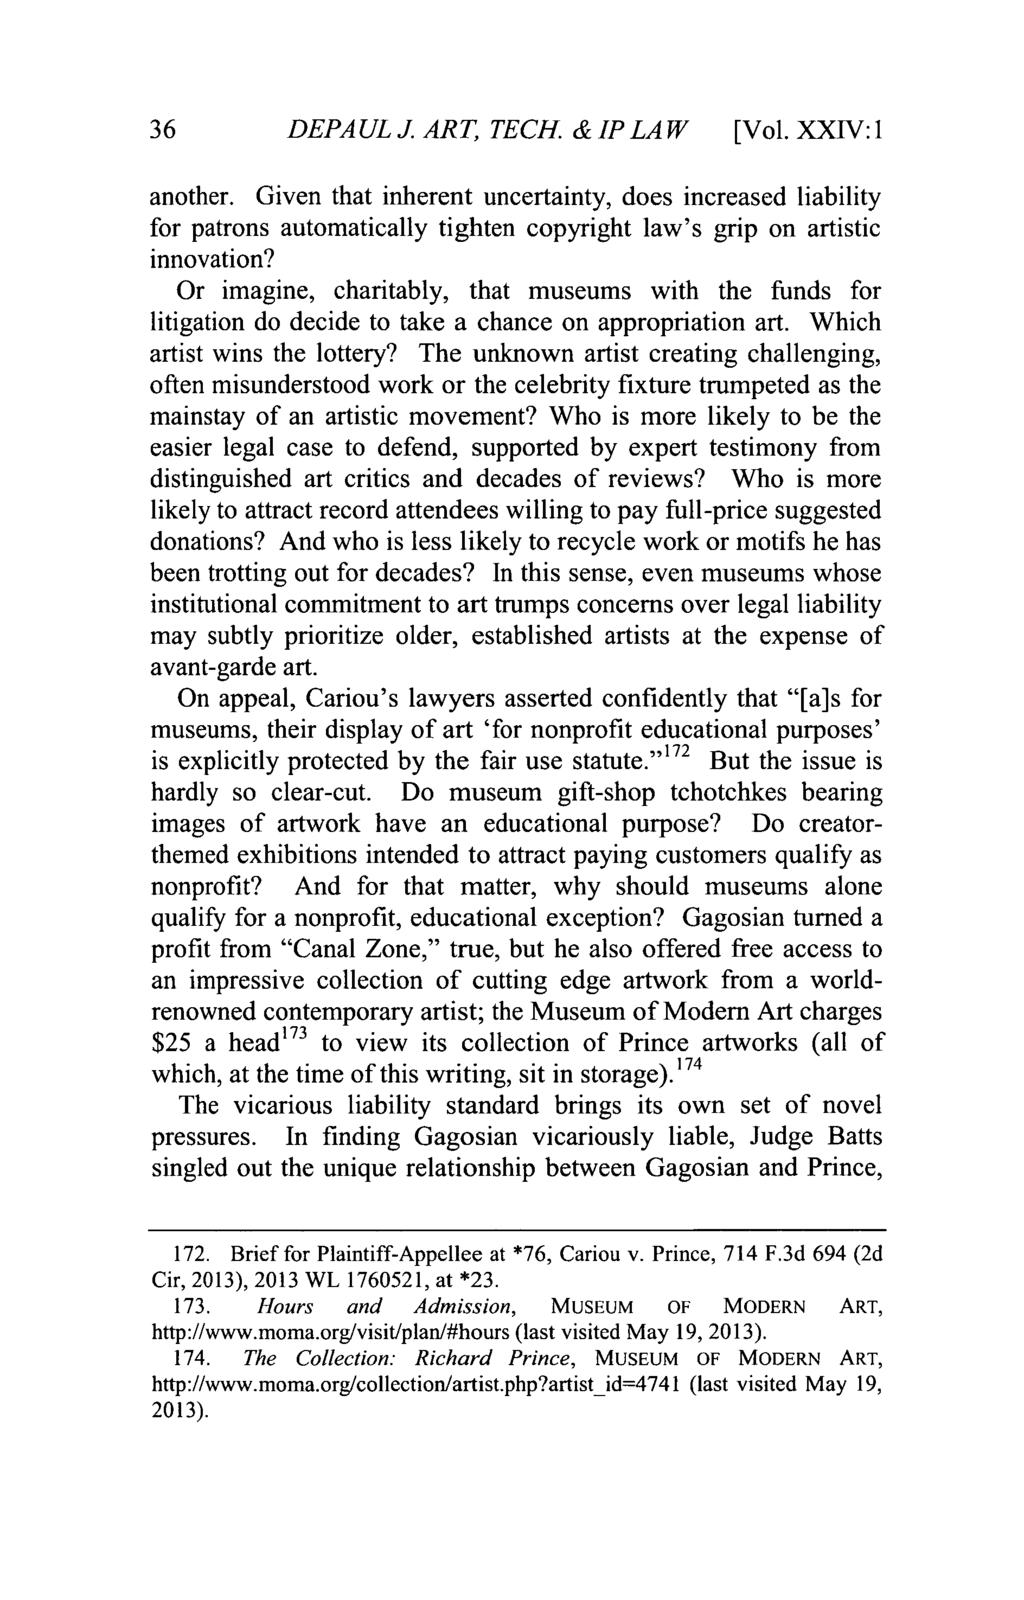 DePaul Journal of Art, Technology & Intellectual Property Law, Vol. 24, Iss